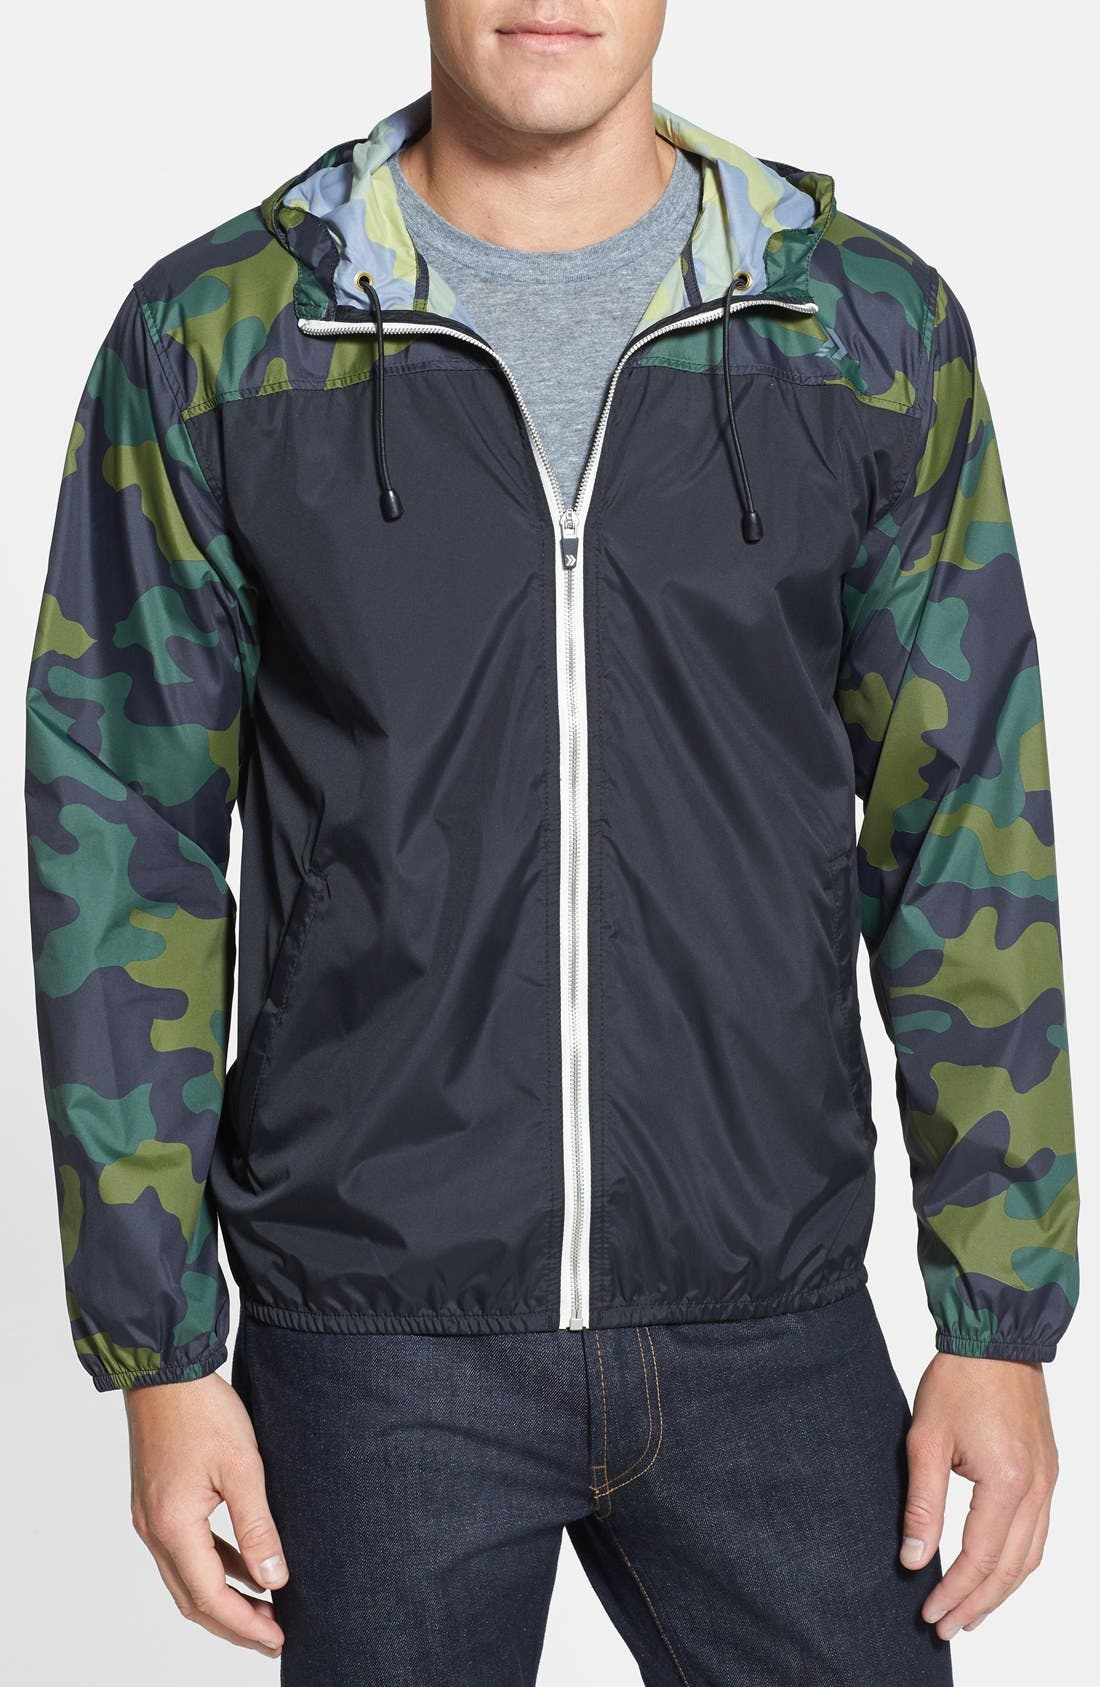 Alternate Image 1 Selected - Athletic Recon 'Firebee' Hooded Jacket